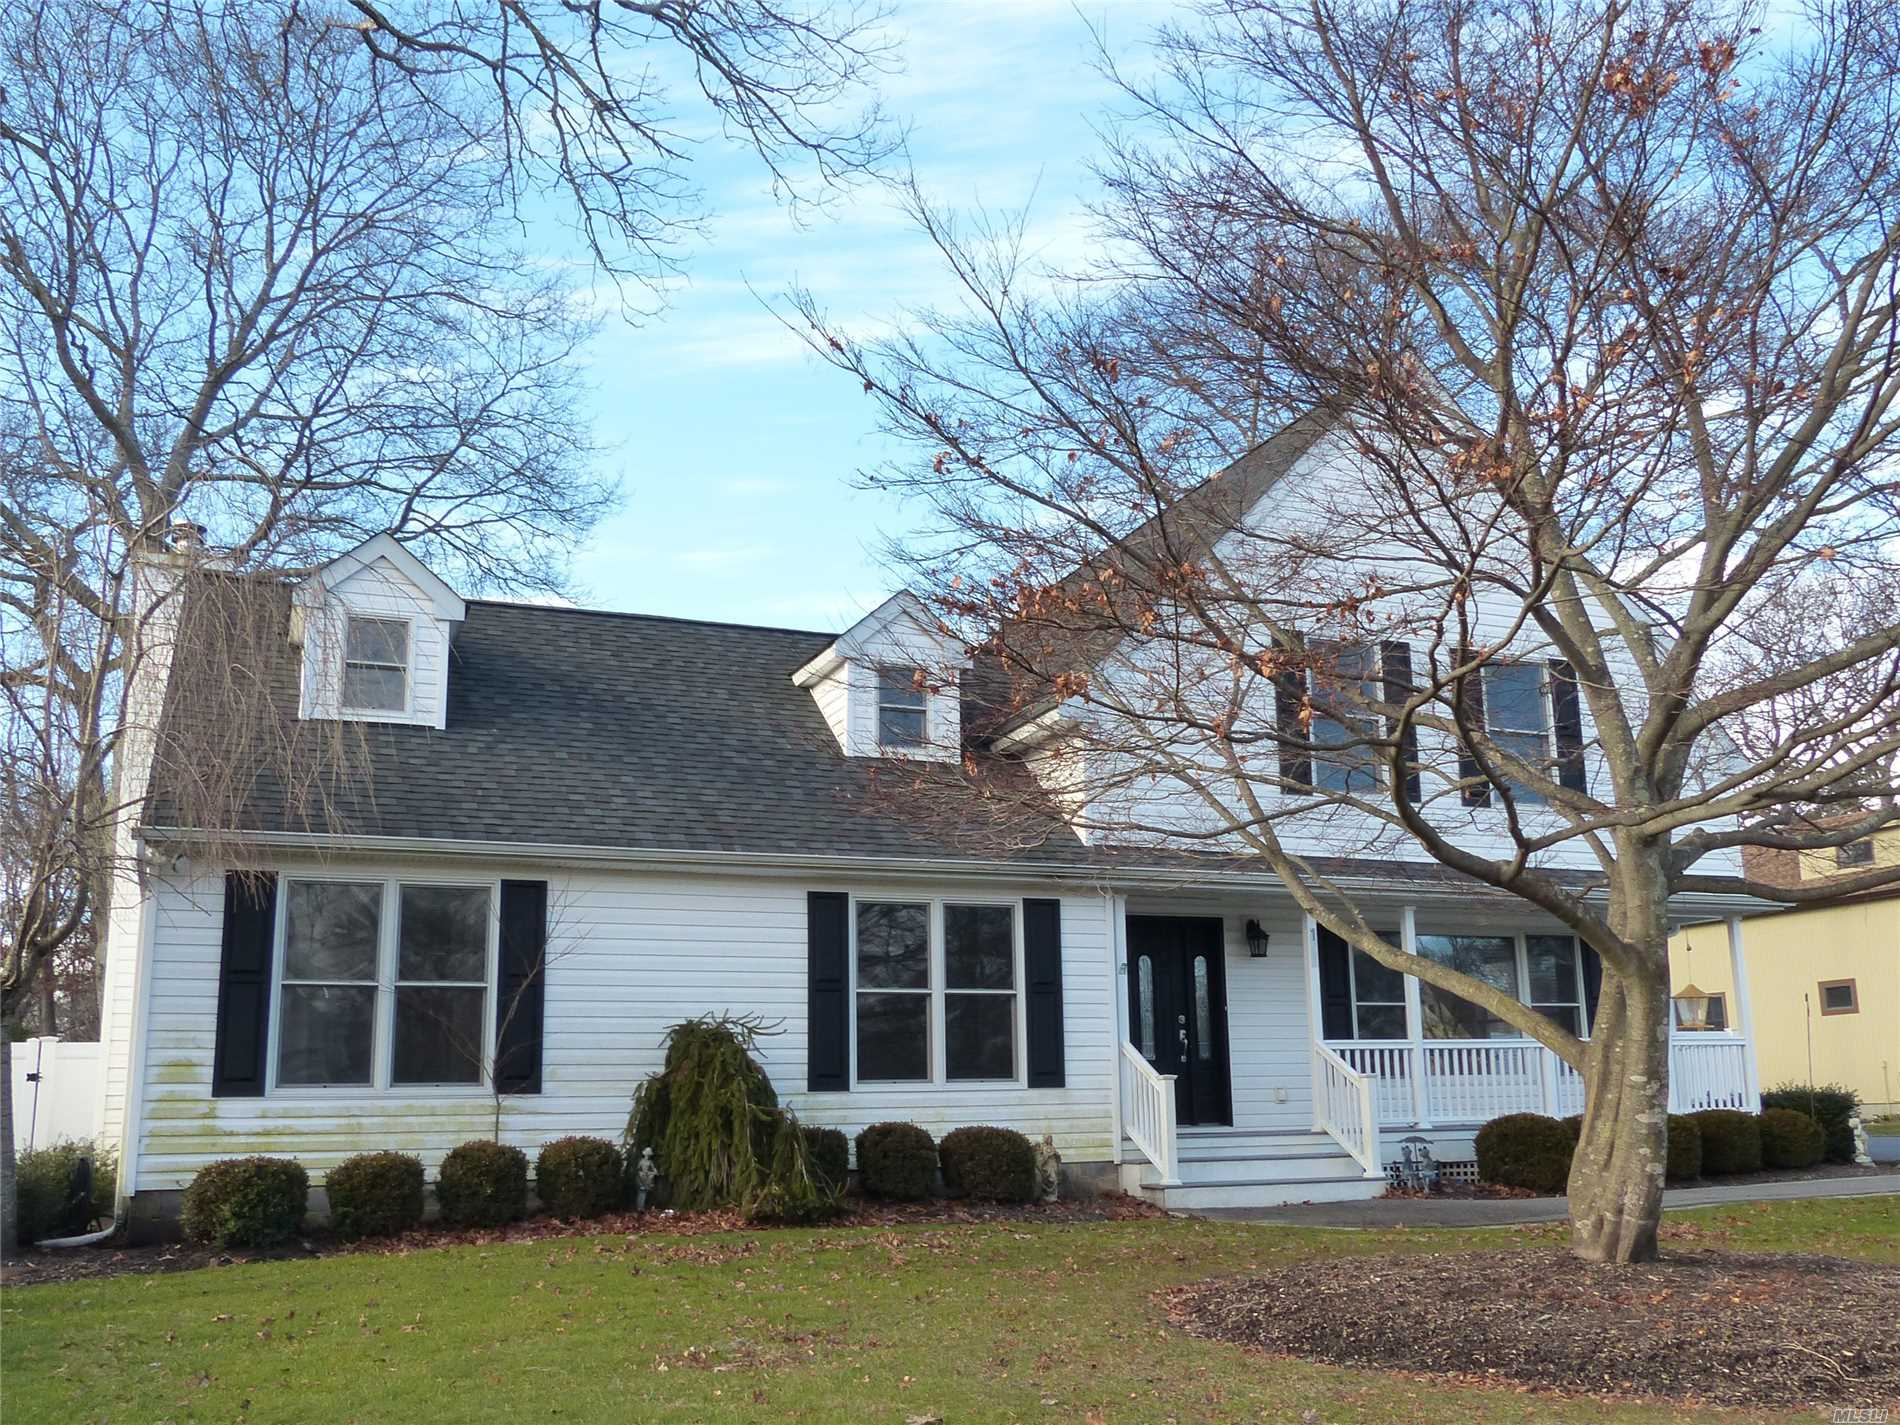 Beautiful Custom Home Featuring 8 Total Rooms, 4 Bedrooms, & 2.5 Baths! Large Rooms Throughout, Including An Eat In Kitchen, Formal Dining Room, Den, Living Room, & 4 Bedrooms! Full Basement, Central Air, & Wood Flooring! Full 1/2 Acre Fenced Lot! *Please Note The Taxes Will Be Reassessed After The Final C/O Has Been Issued.*